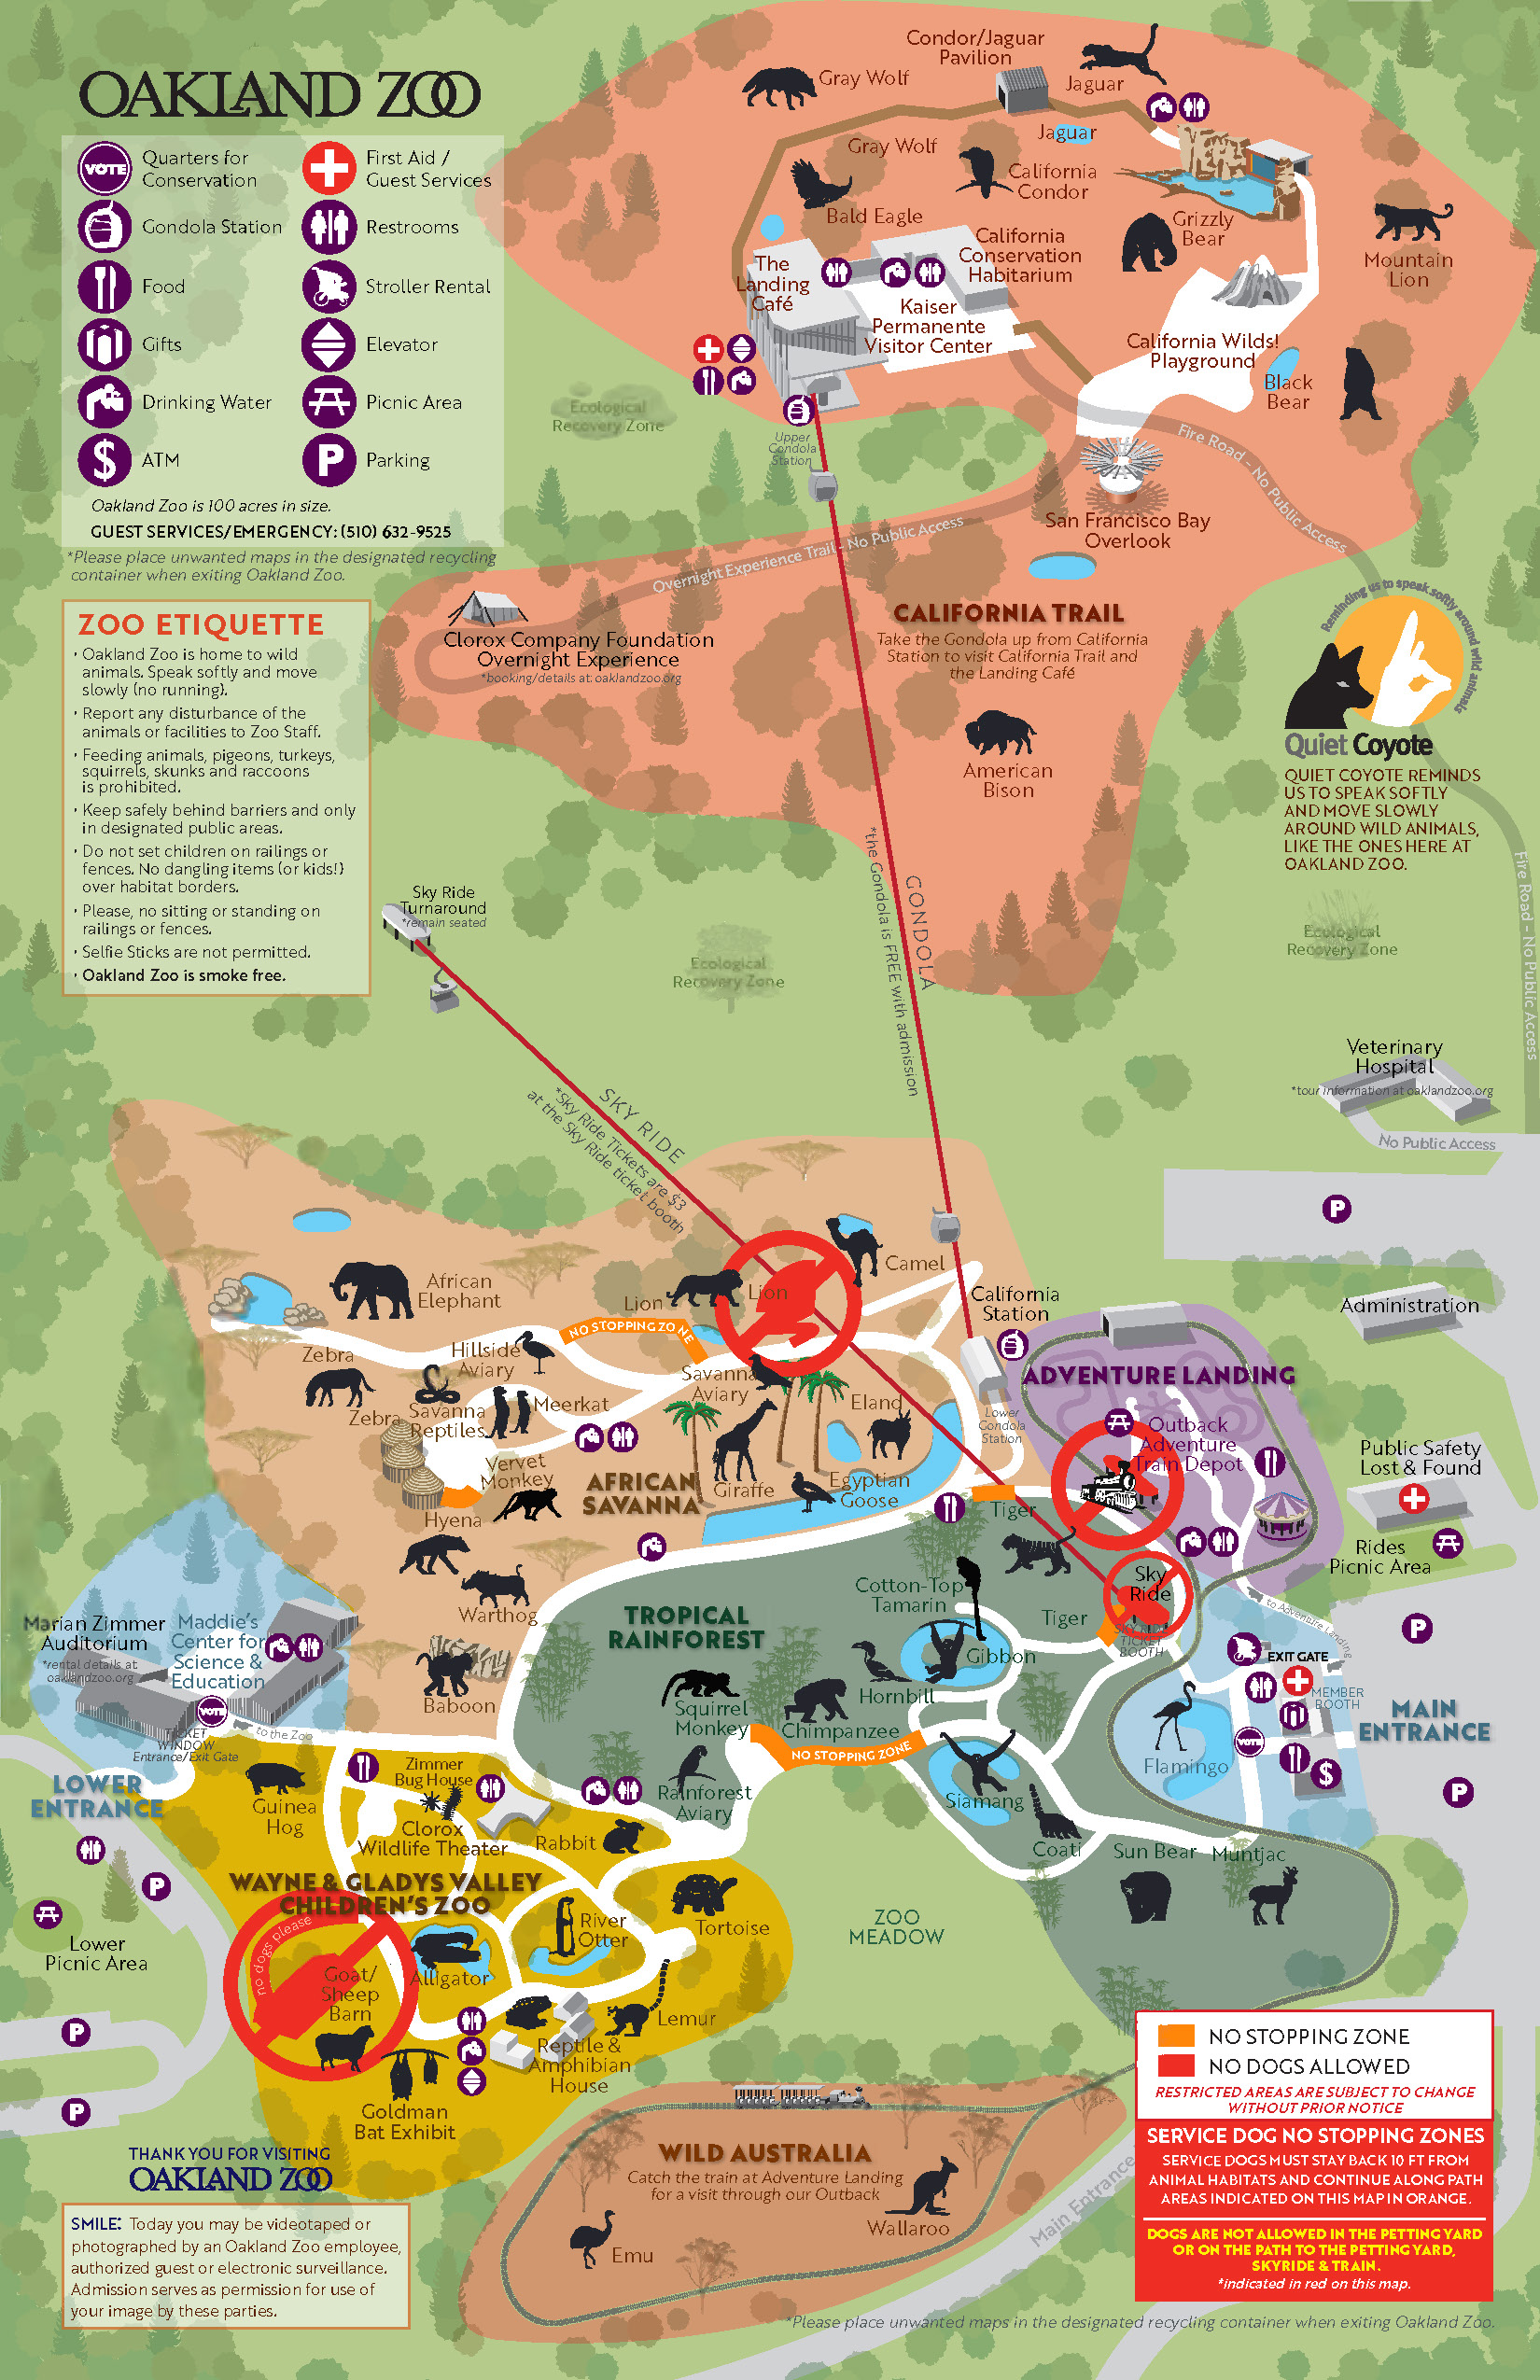 map Zoo Maps on stadium map, bedroom map, community map, zog map, aquarium map, museum map, playground map, sense8 map, singapore map, world map, the 100 map, parks map, animal map, beach map, farm map, ocean map, neighborhood map, illegal wildlife trade map, big cat map, z nation map,